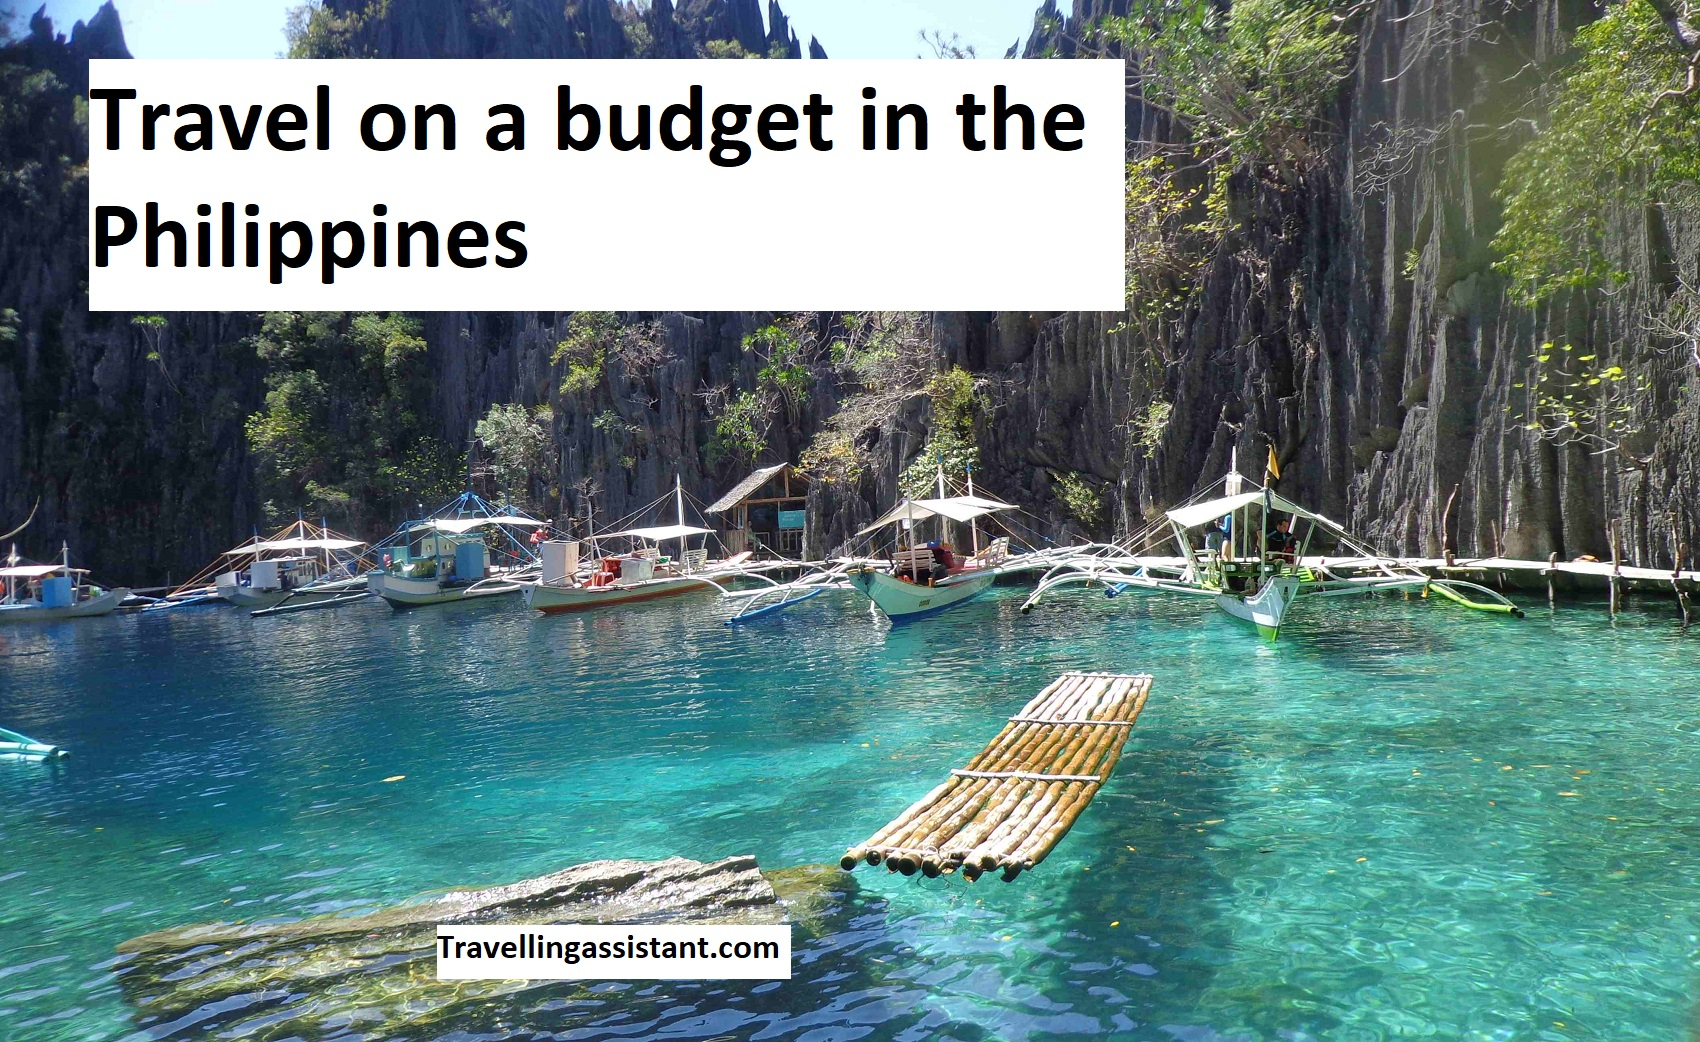 Travel on a budget in the Philippines